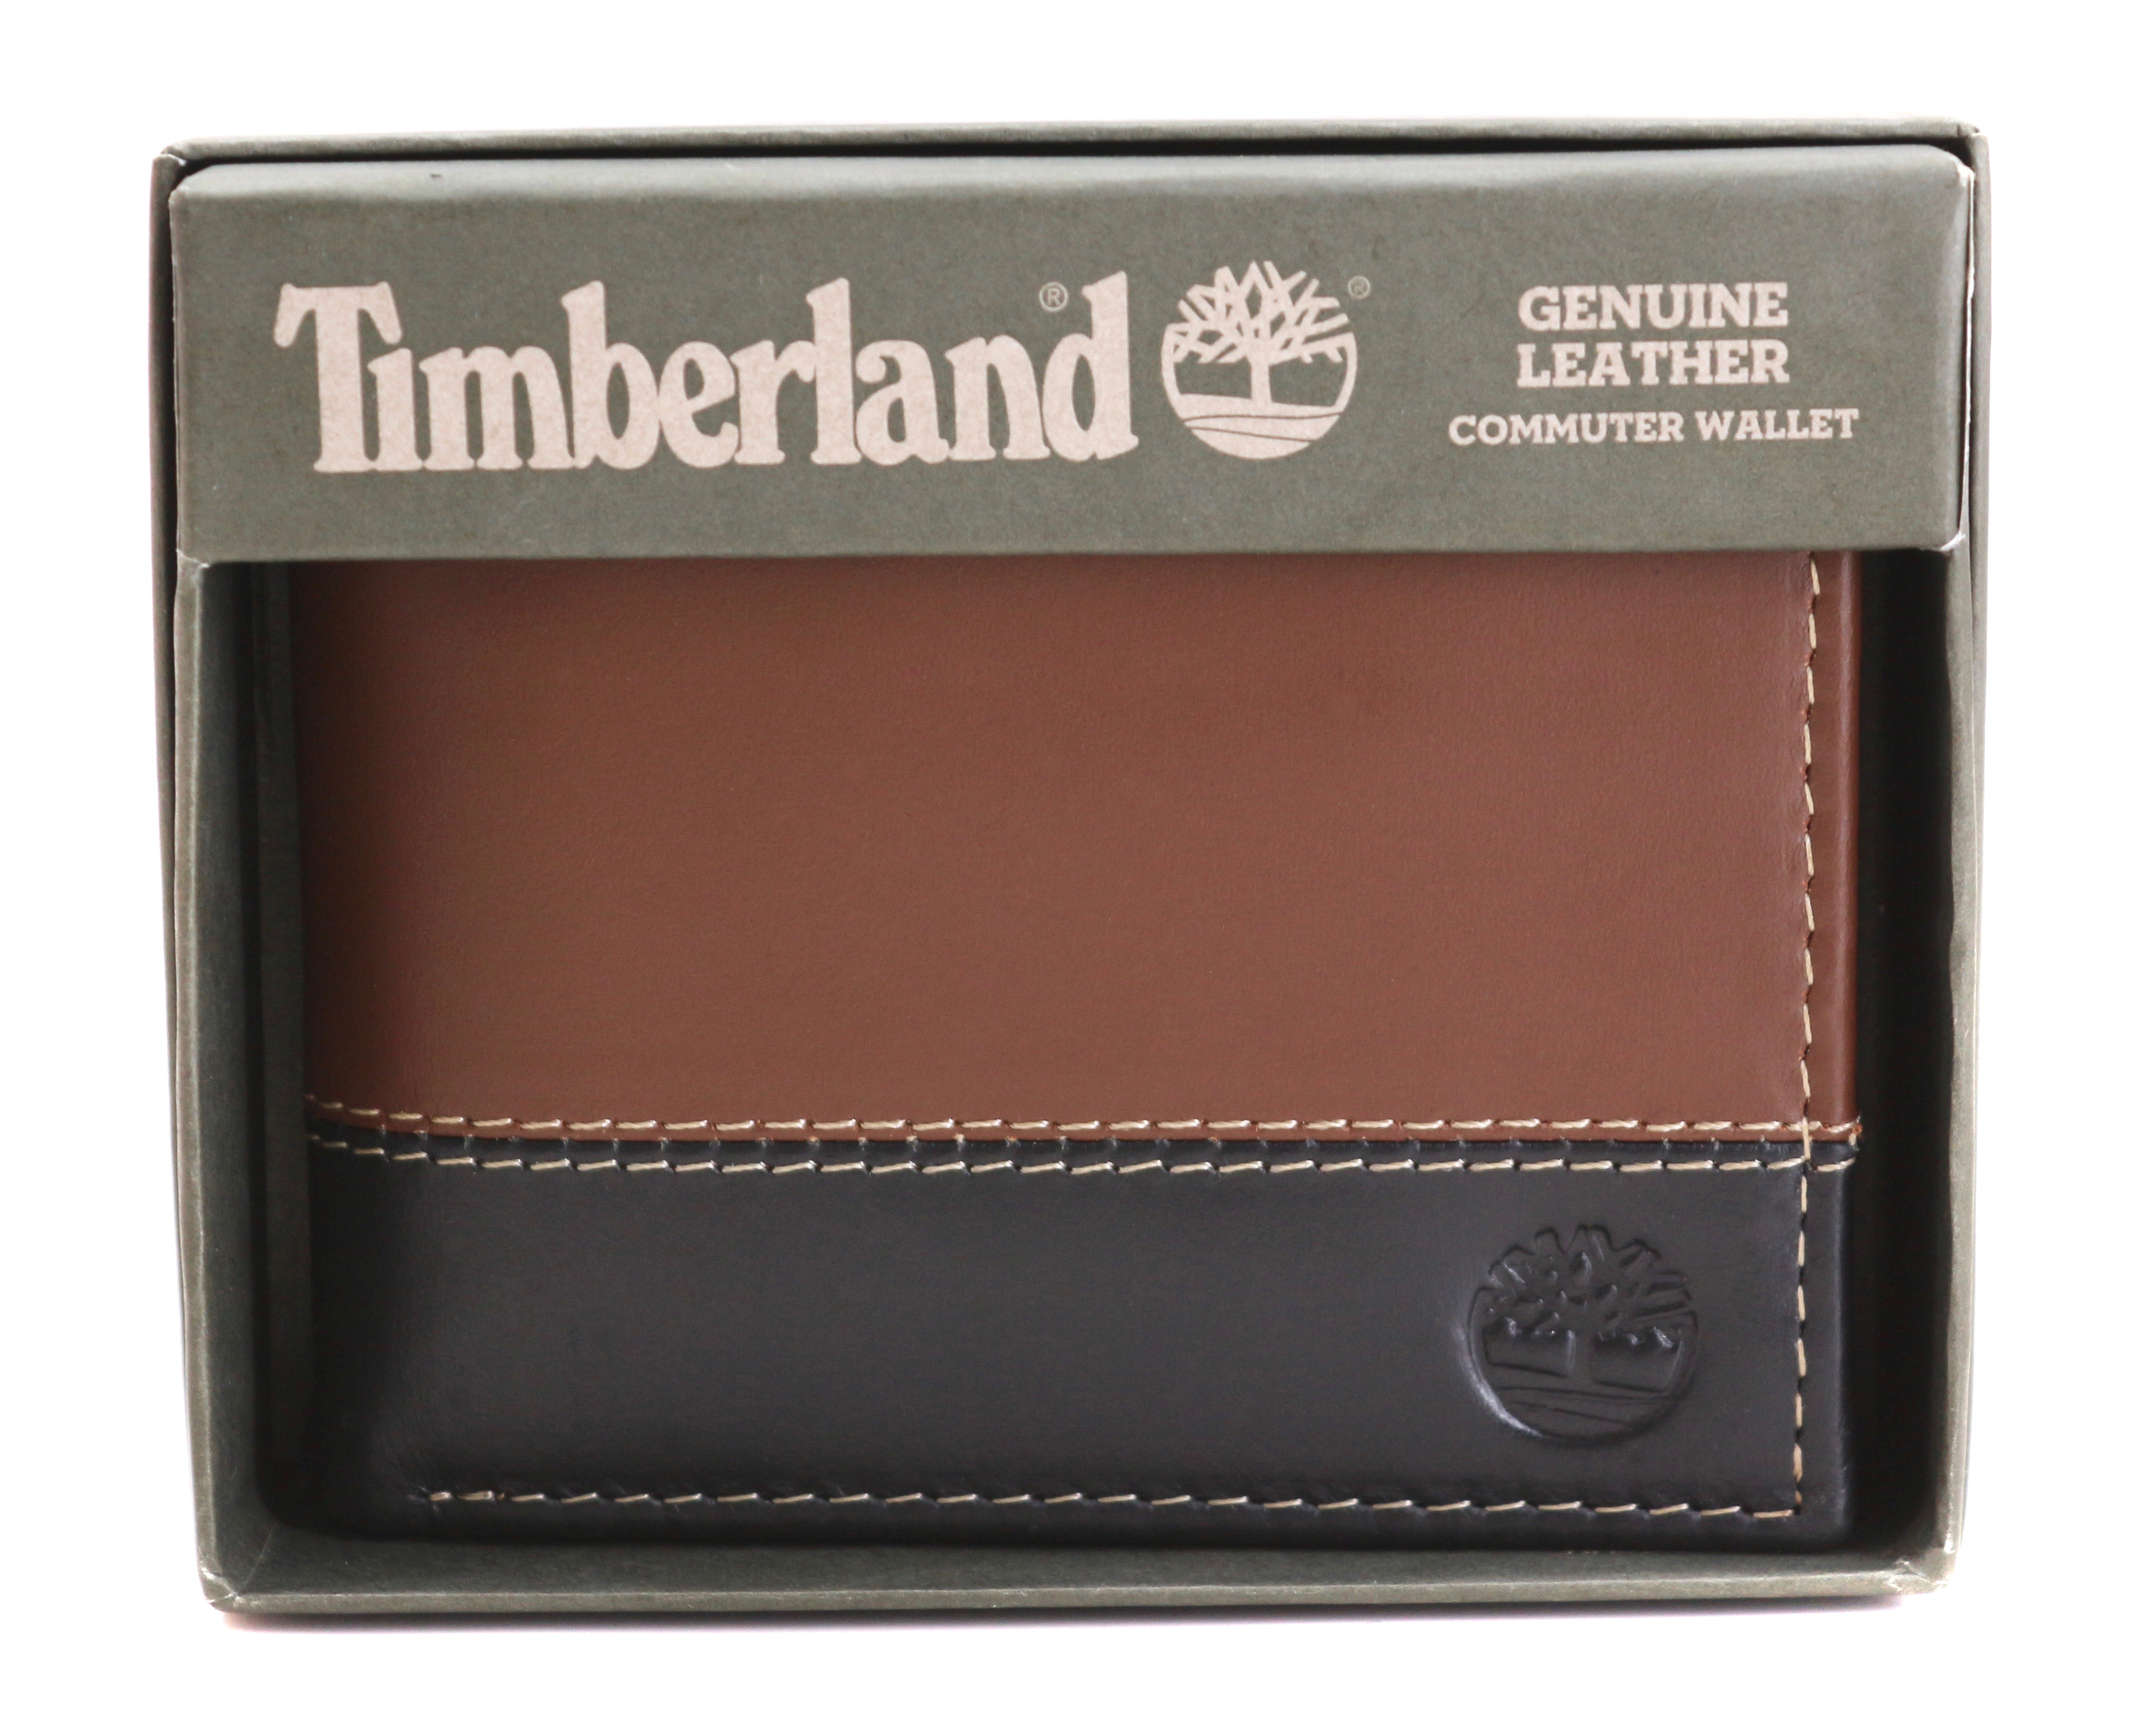 Timberland-Men-039-s-Genuine-Two-Tone-Leather-Credit-Card-Billfold-Commuter-Wallet thumbnail 35